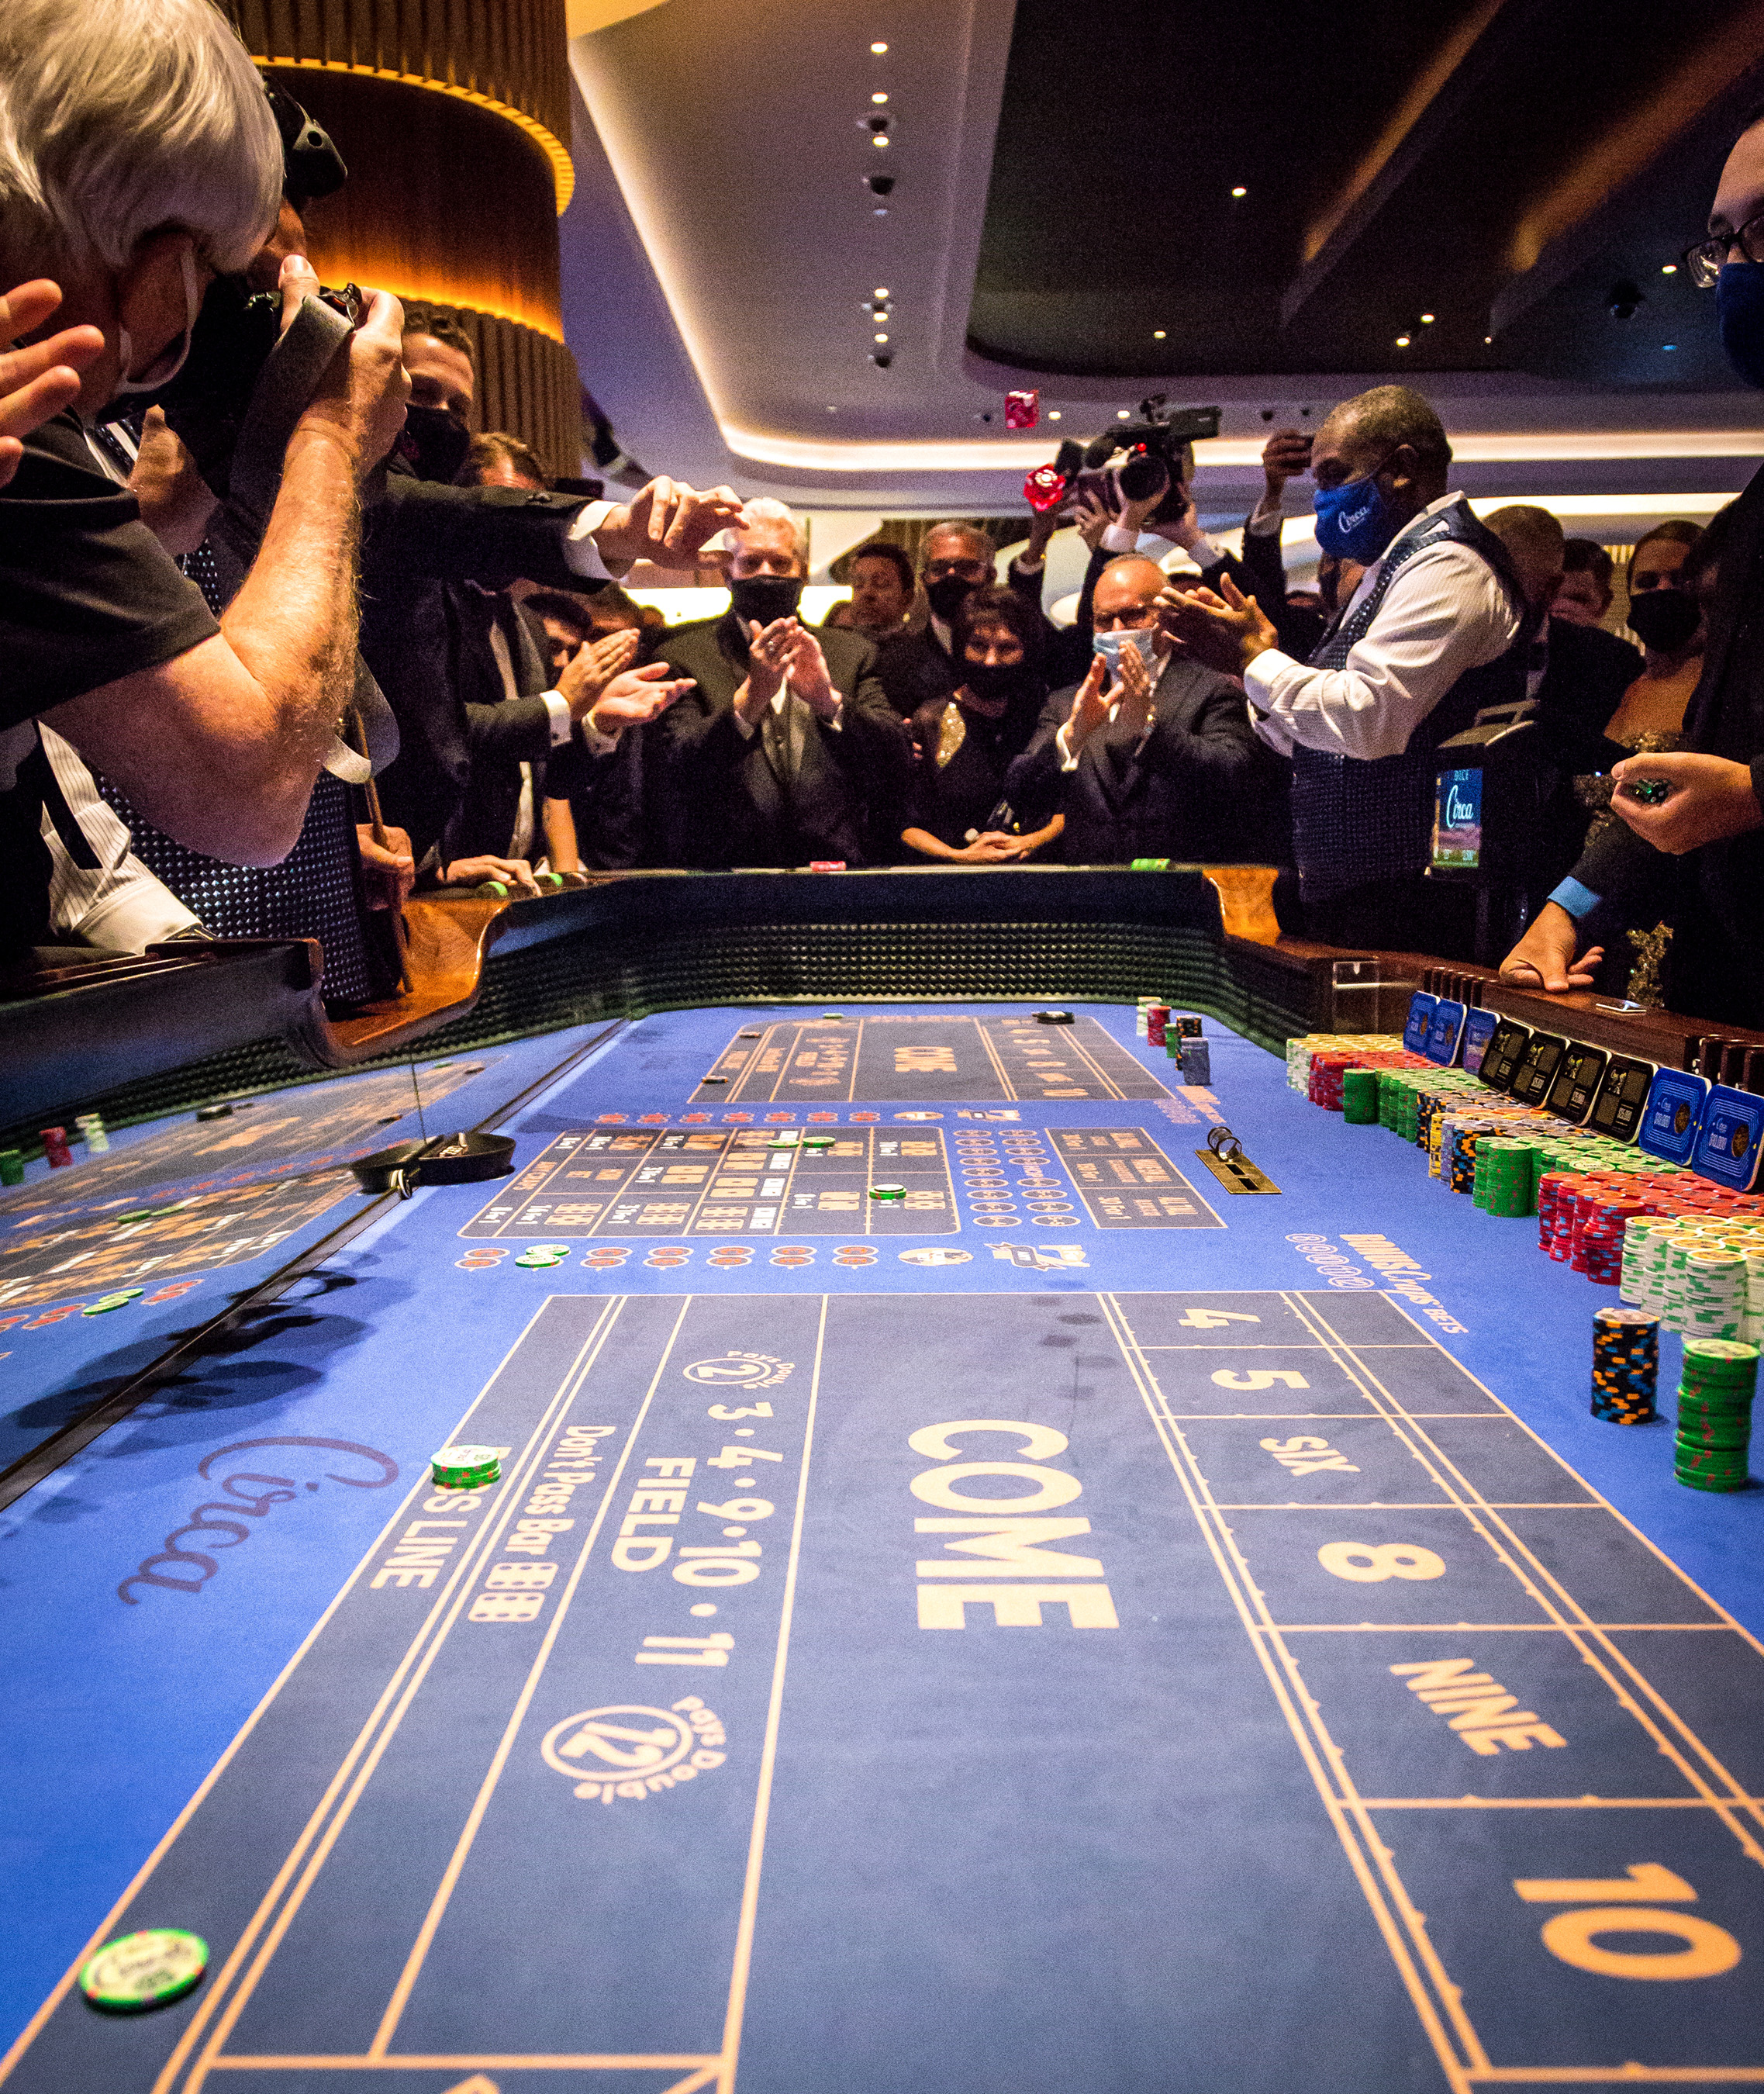 Las Vegas pioneers and executives joined to celebrate the first roll of the dice at Circa including Ryan Growney/South Point Hotel & Casino, Jonathan Jossel/The Plaza Las Vegas, Scott Sibella/Resorts World Las Vegas, Andy Abboud/ Venetian Resort Hotel Casino, Chris Latil/Golden Nugget Hotel & Casino, Terry Caudill/TLC Casino Enterprises, Mike Nolan/El Cortez Hotel and Casino, and Brendan Gaughan/grandson of Jackie Gaughan.